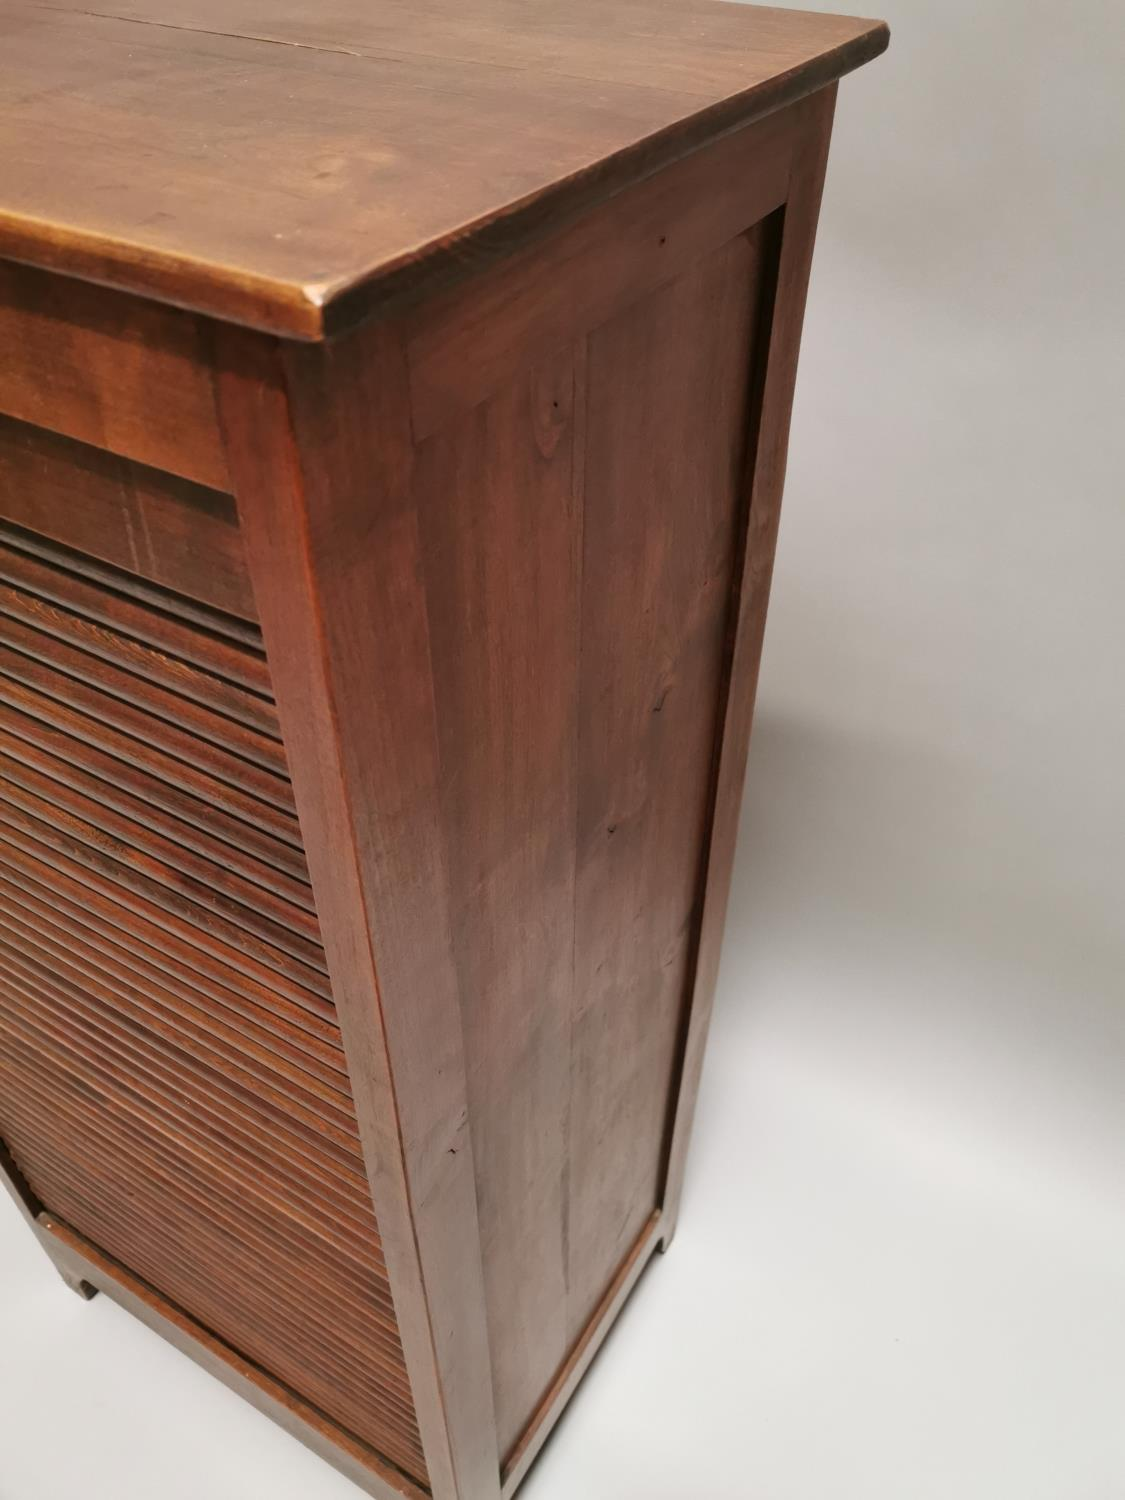 Early 20th. C. oak filing cabinet - Image 3 of 7